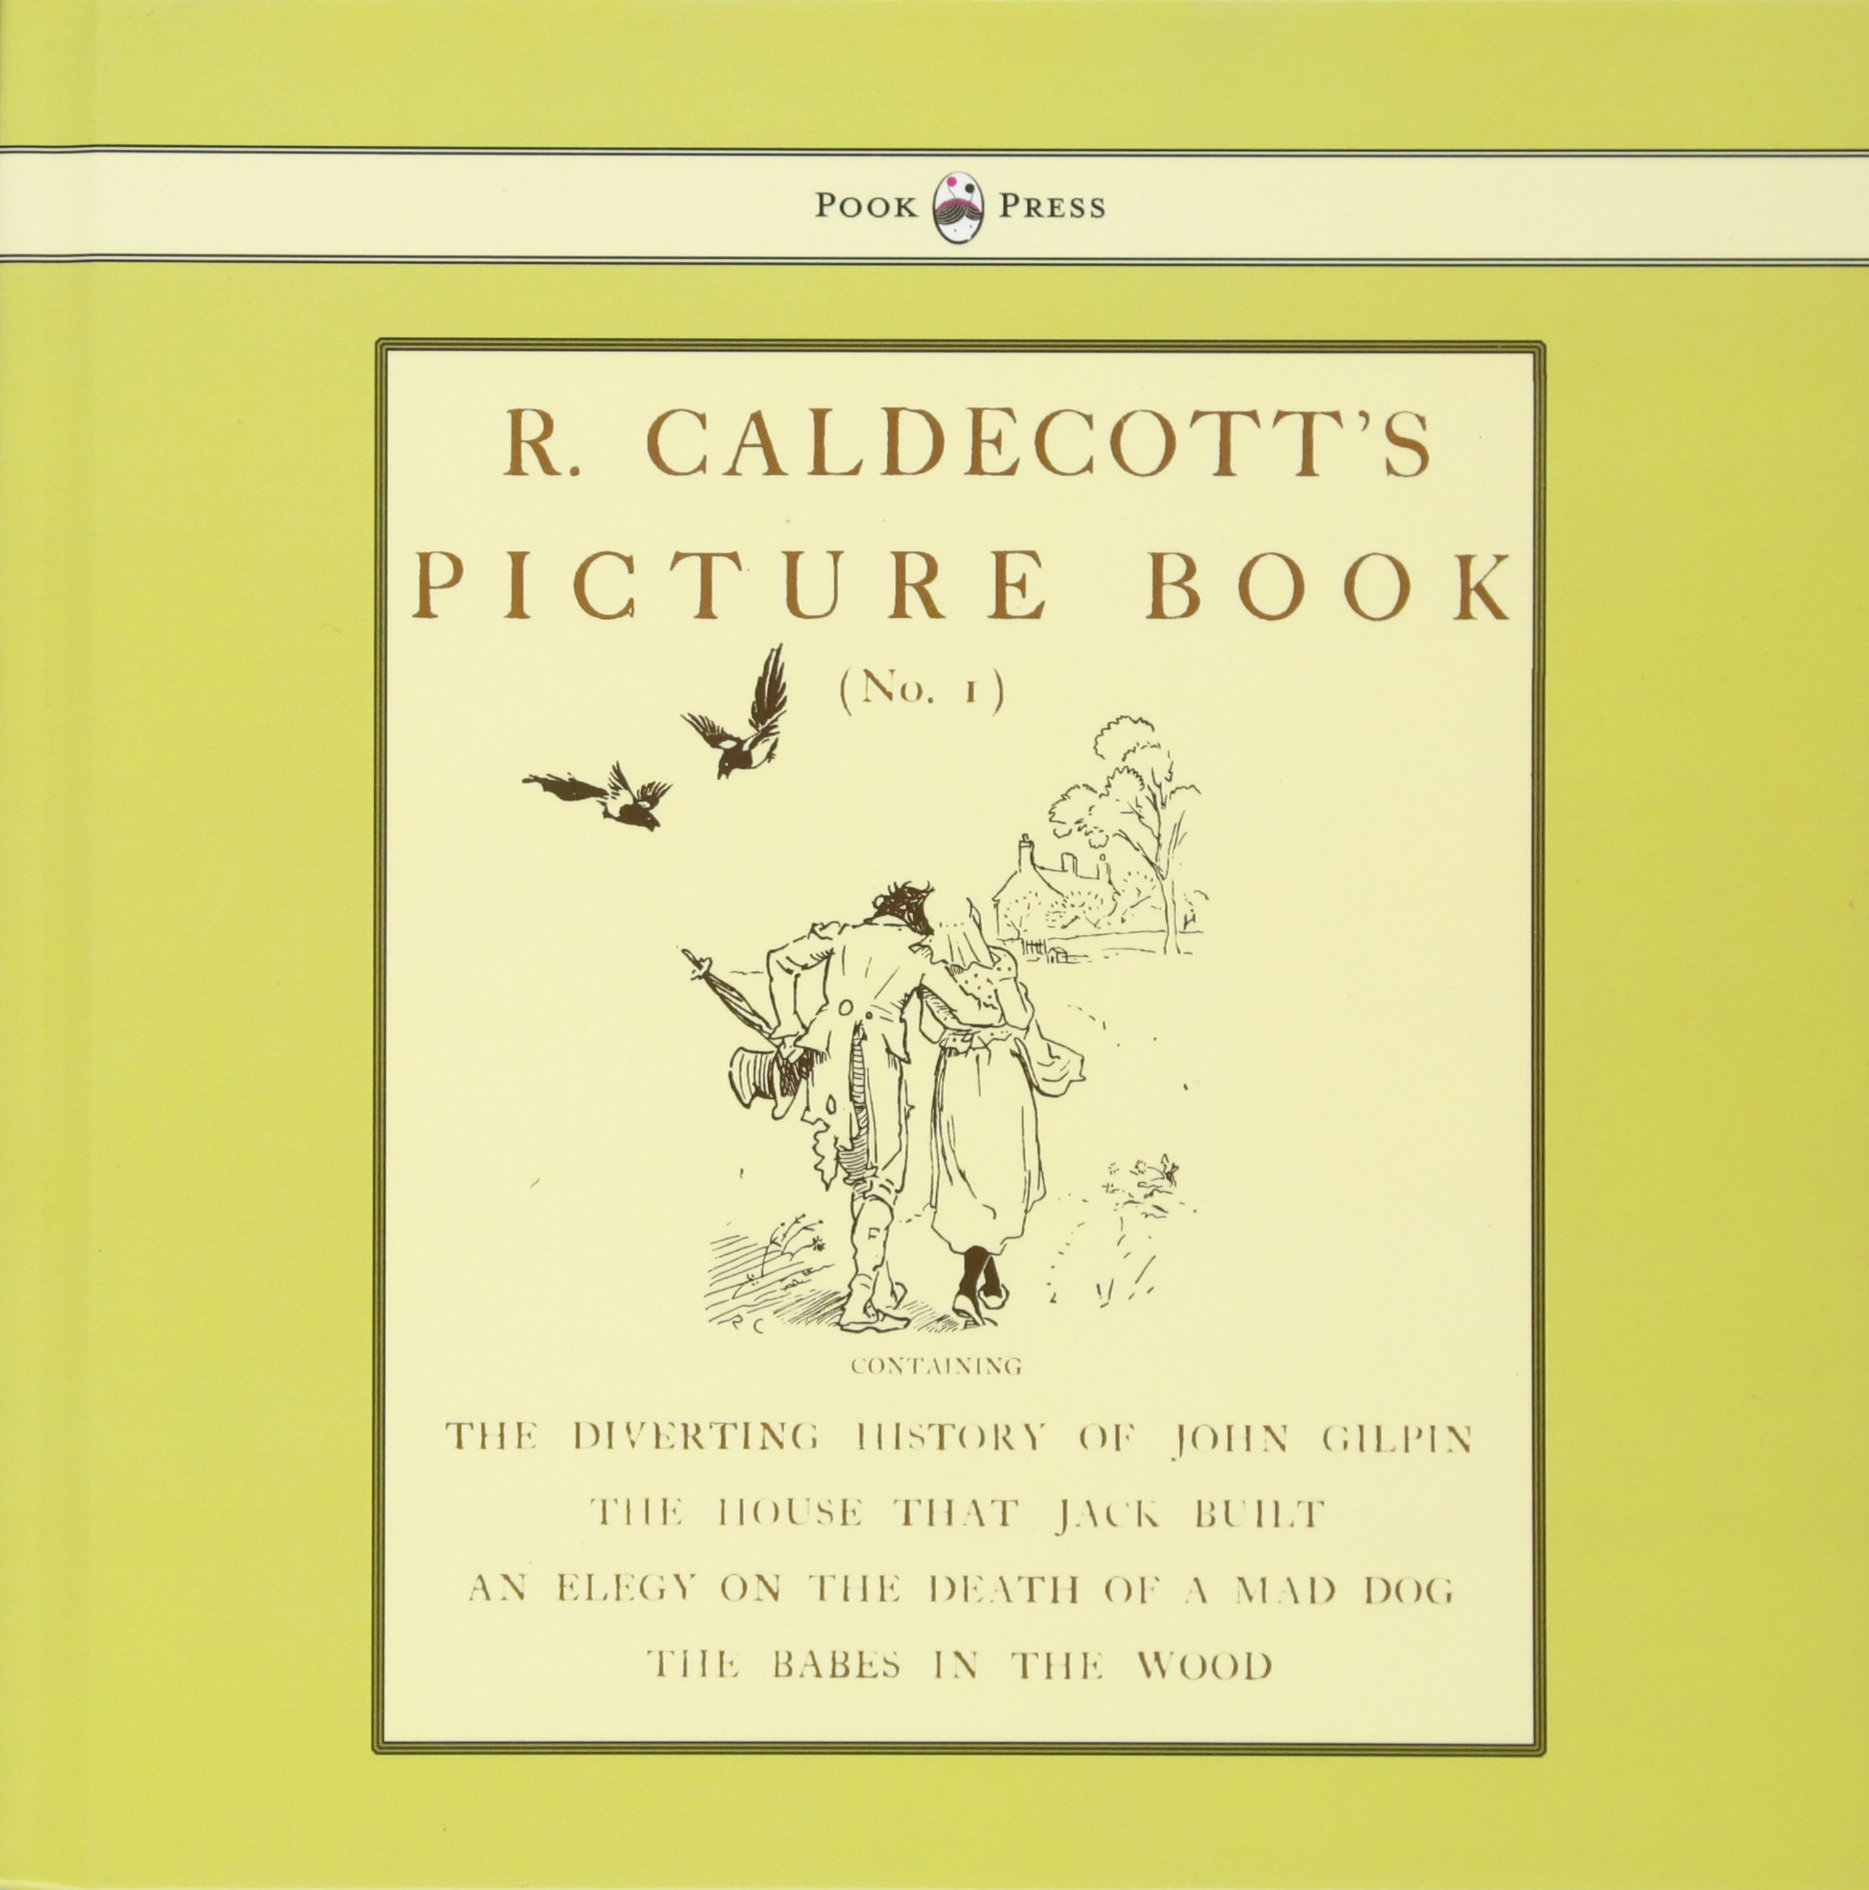 R. Caldecott's Picture Book - No. 1 - Containing the Diverting History of John Gilpin, the House That Jack Built, an Elegy on the Death of a Mad Dog, the Babes in the Wood PDF